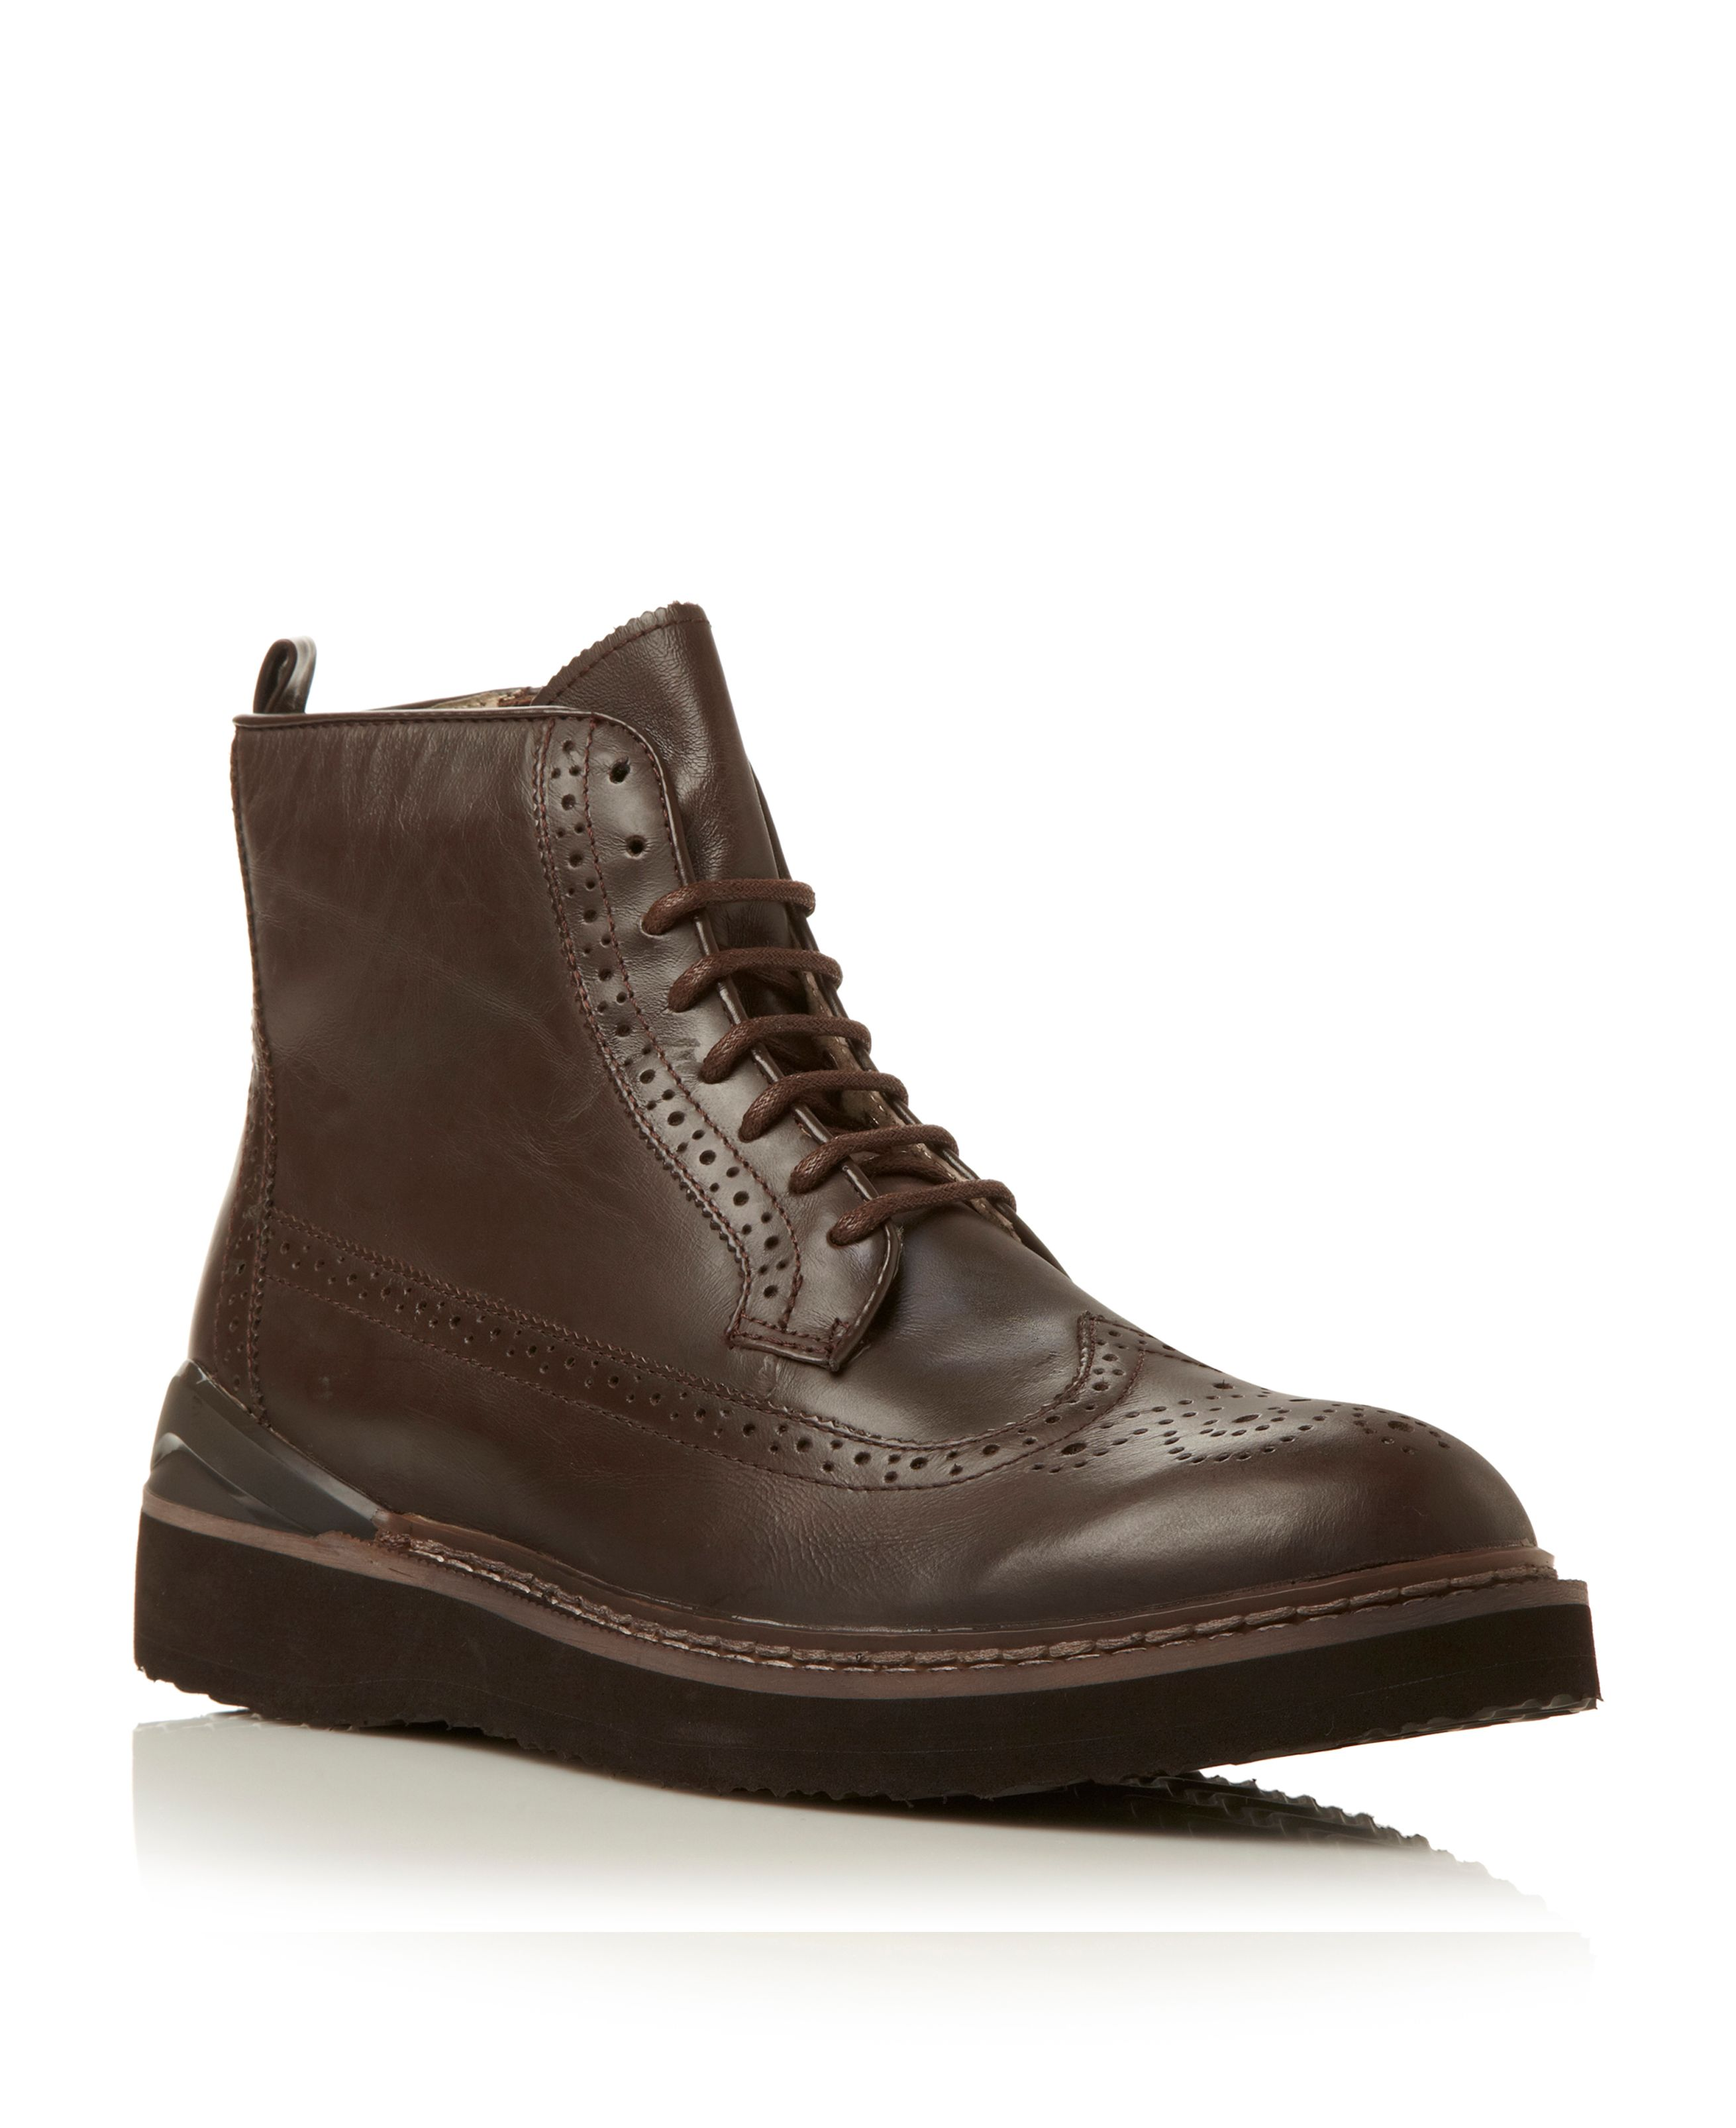 Chrome heavy sport brogue boot